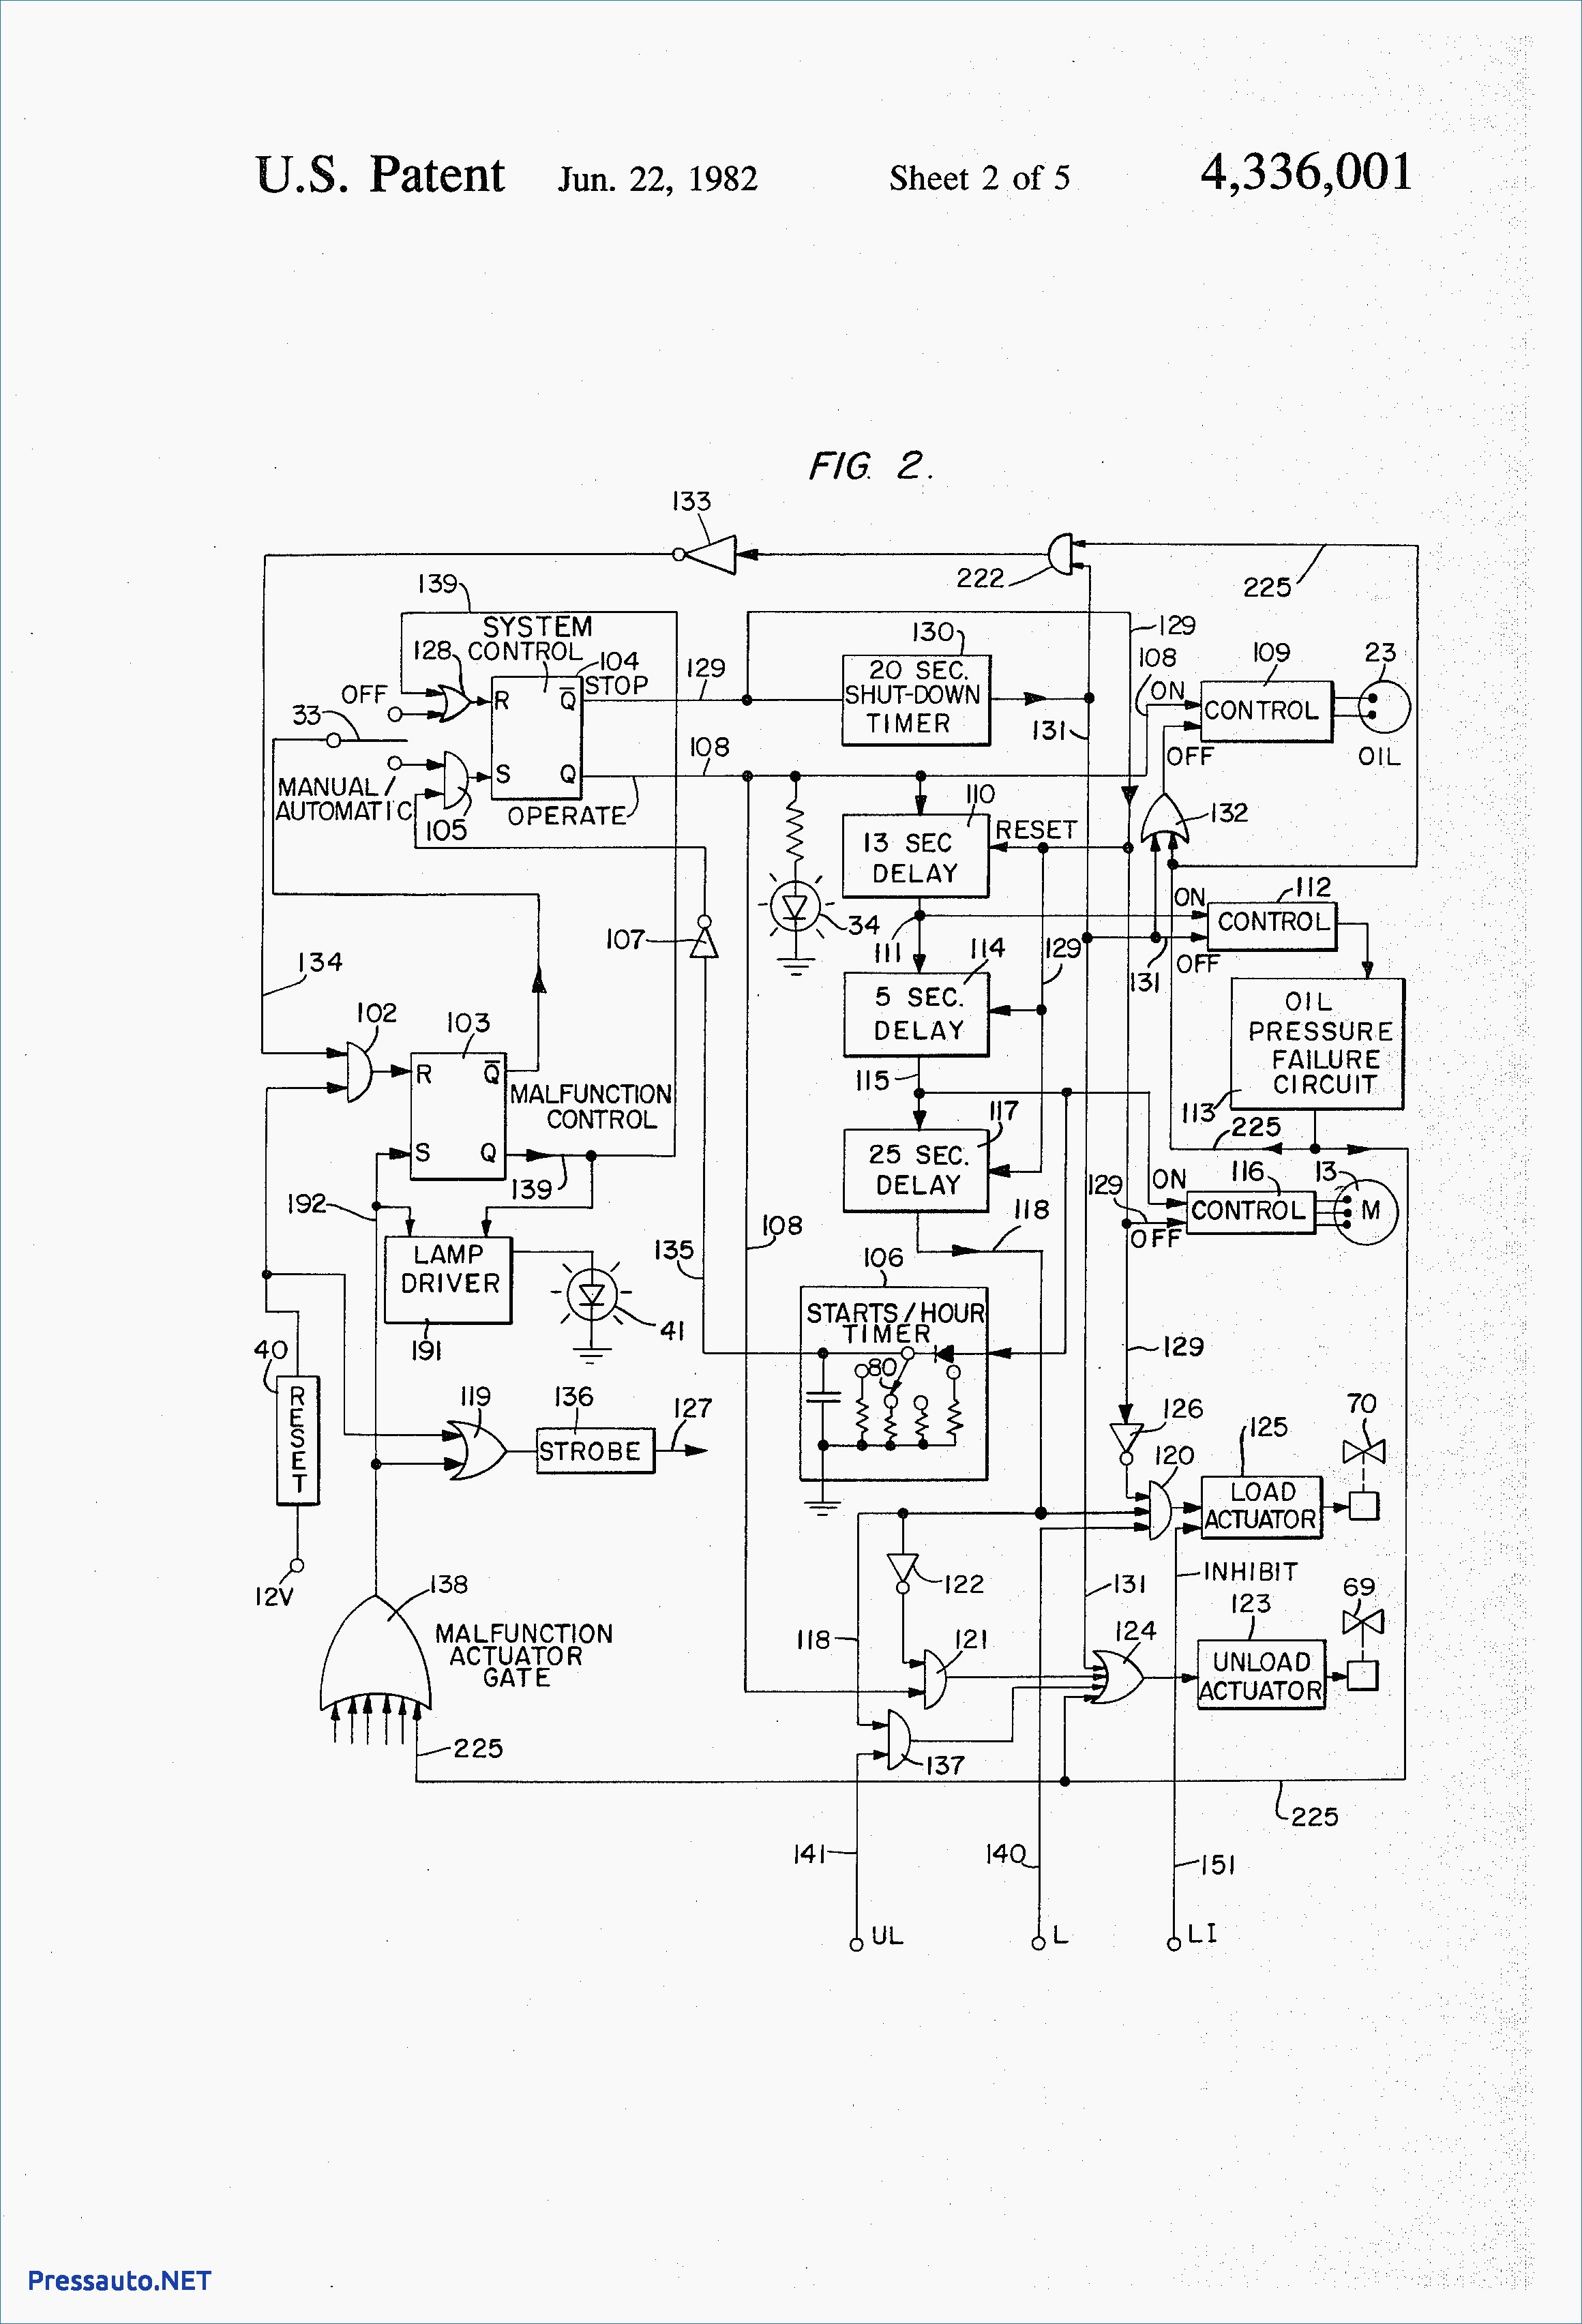 ingersoll rand air compressor wiring diagram Collection-Ingersoll Rand Air pressor Wiring Diagram Lovely Charming K Z Durango Wiring Diagram Contemporary Electrical 12-i